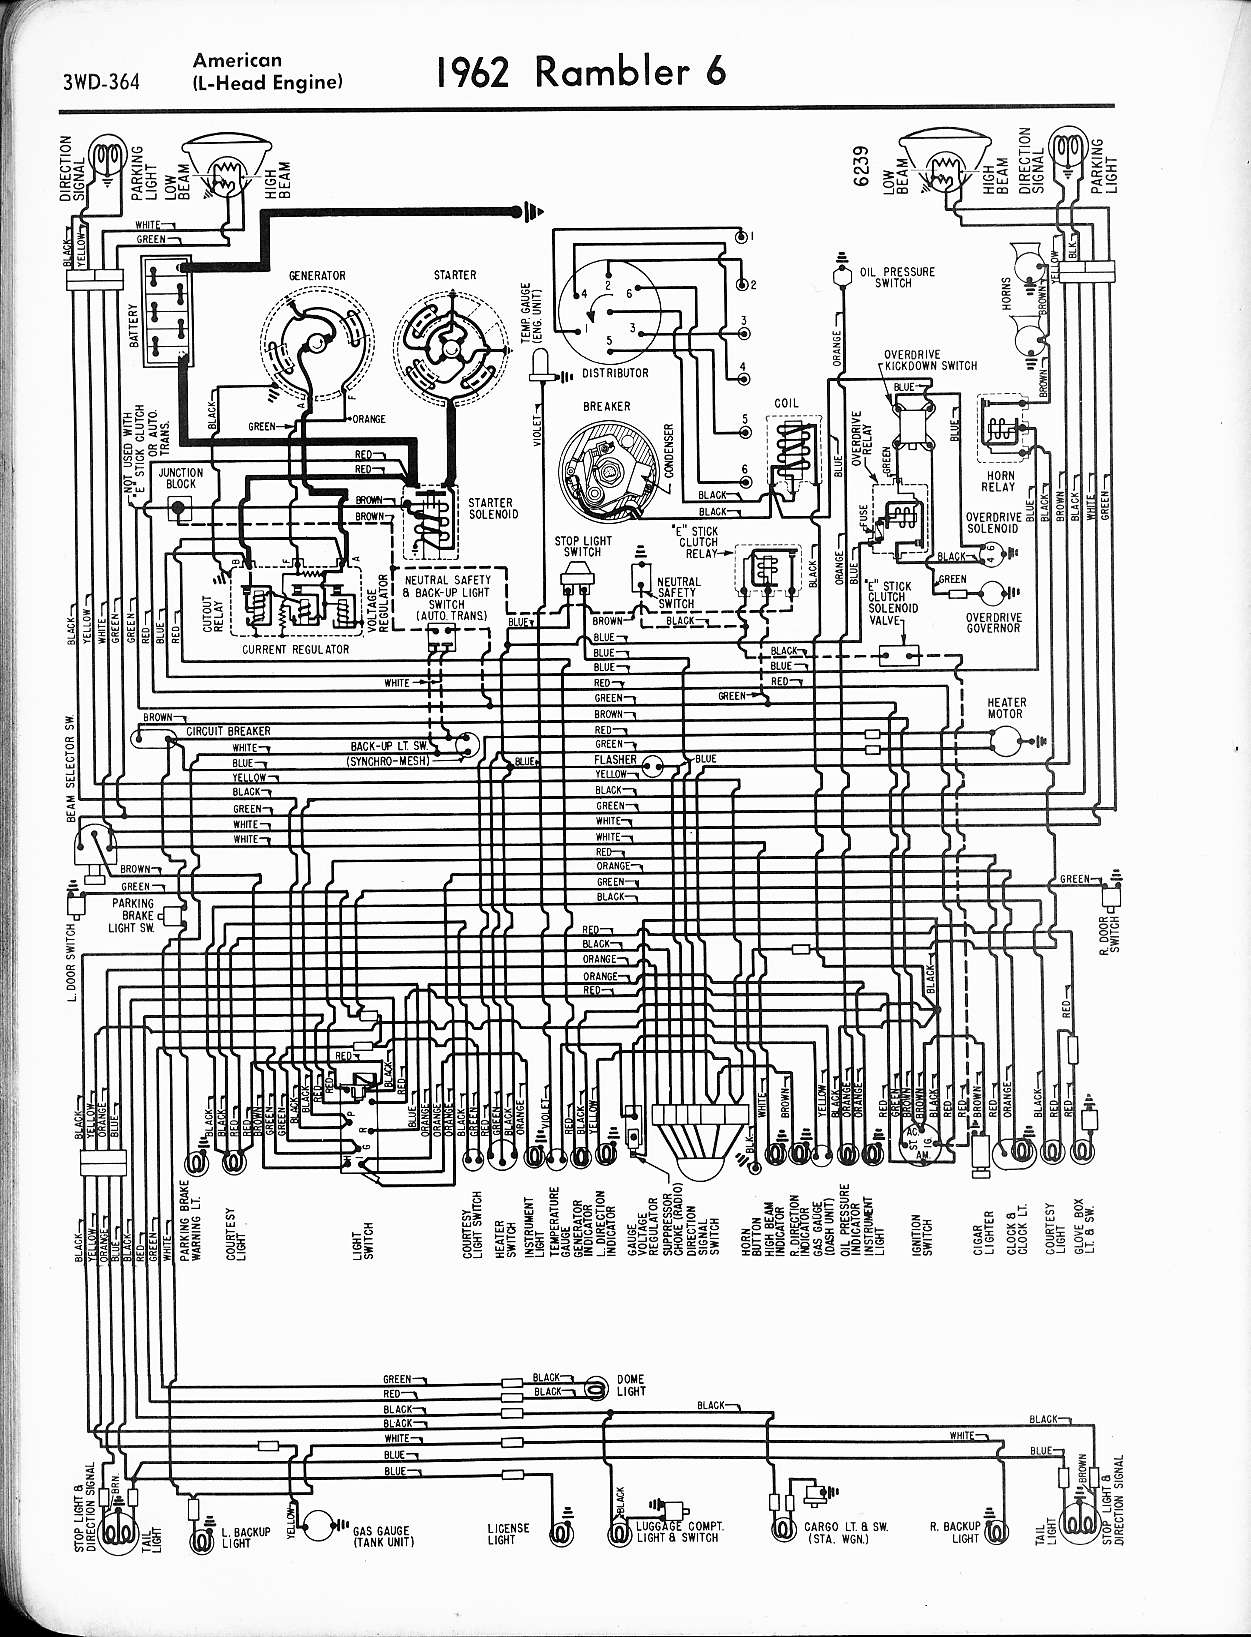 Rambler Wiring Diagrams The Old Car Manual Project 1946 Chevy 1 5 Ton Truck Diagram 1962 6 American L Head Engine